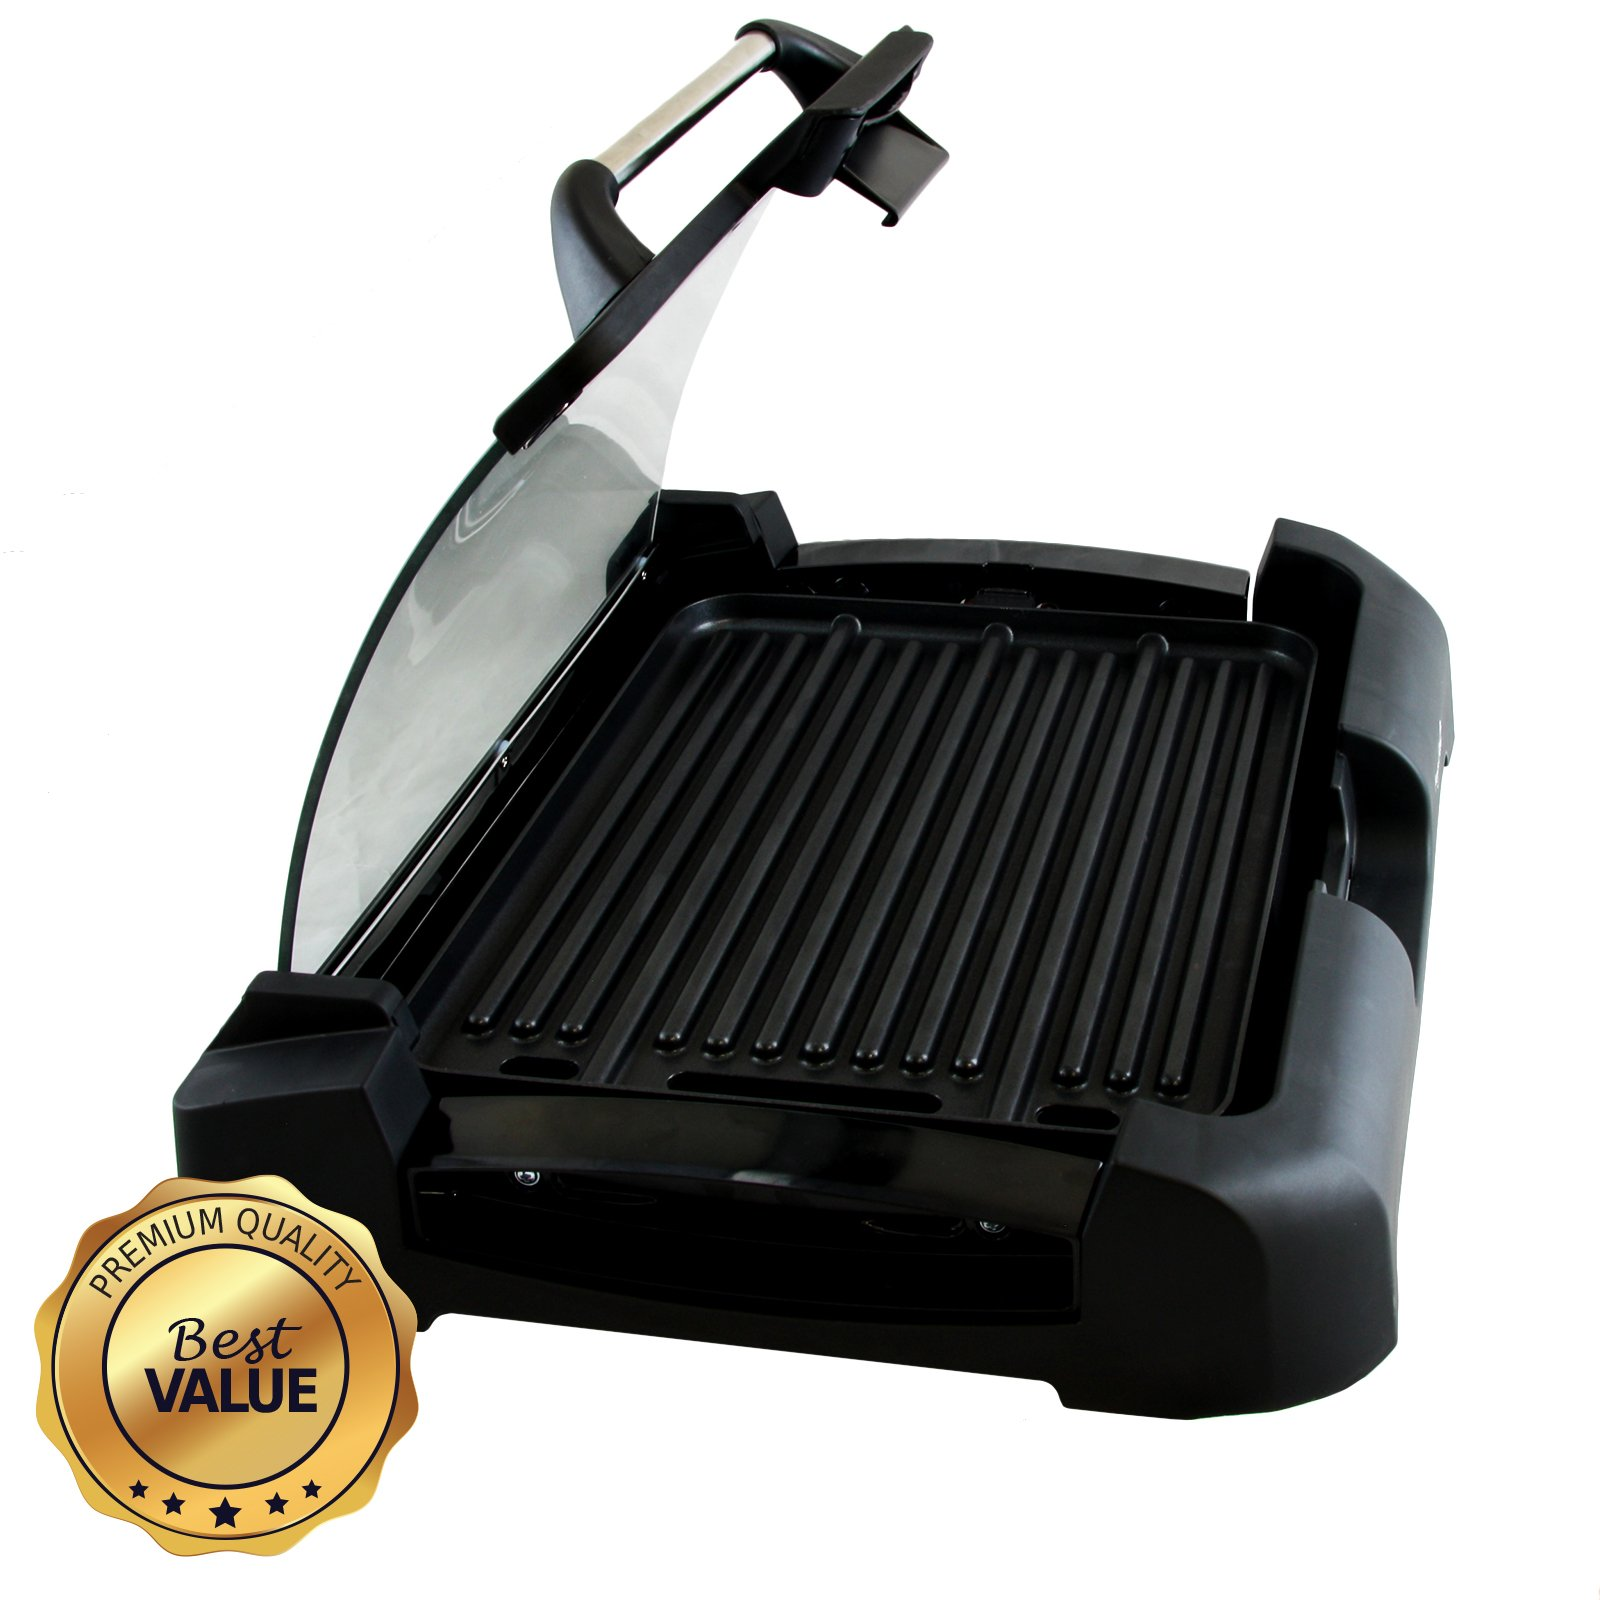 MegaChef Dual Surface Reversible Indoor Grill and Griddle with Removable Glass Lid by Megachef